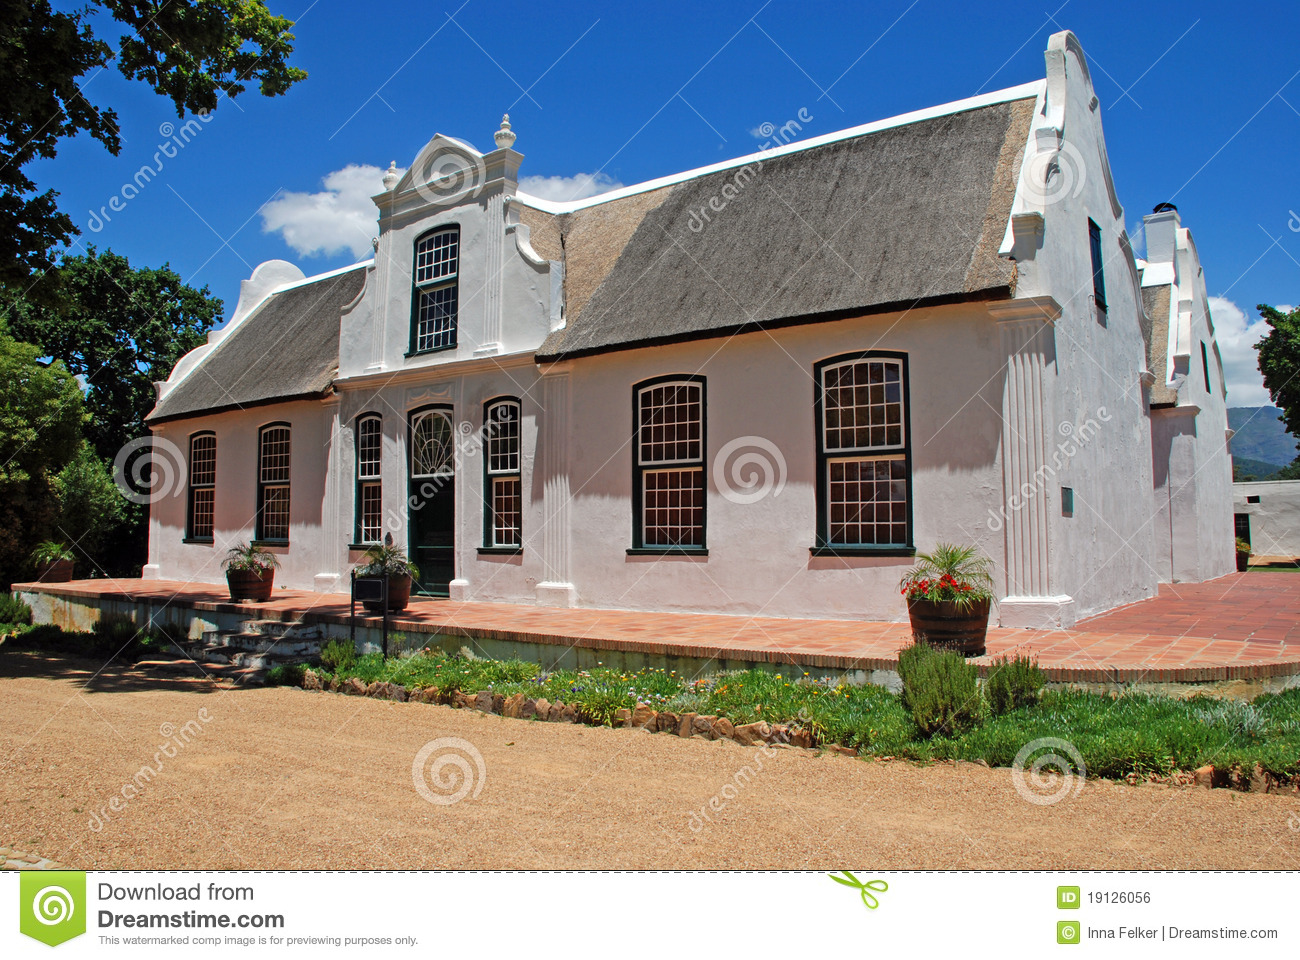 Wine farmhouse in colonial style south africa royalty for Farm style houses south africa